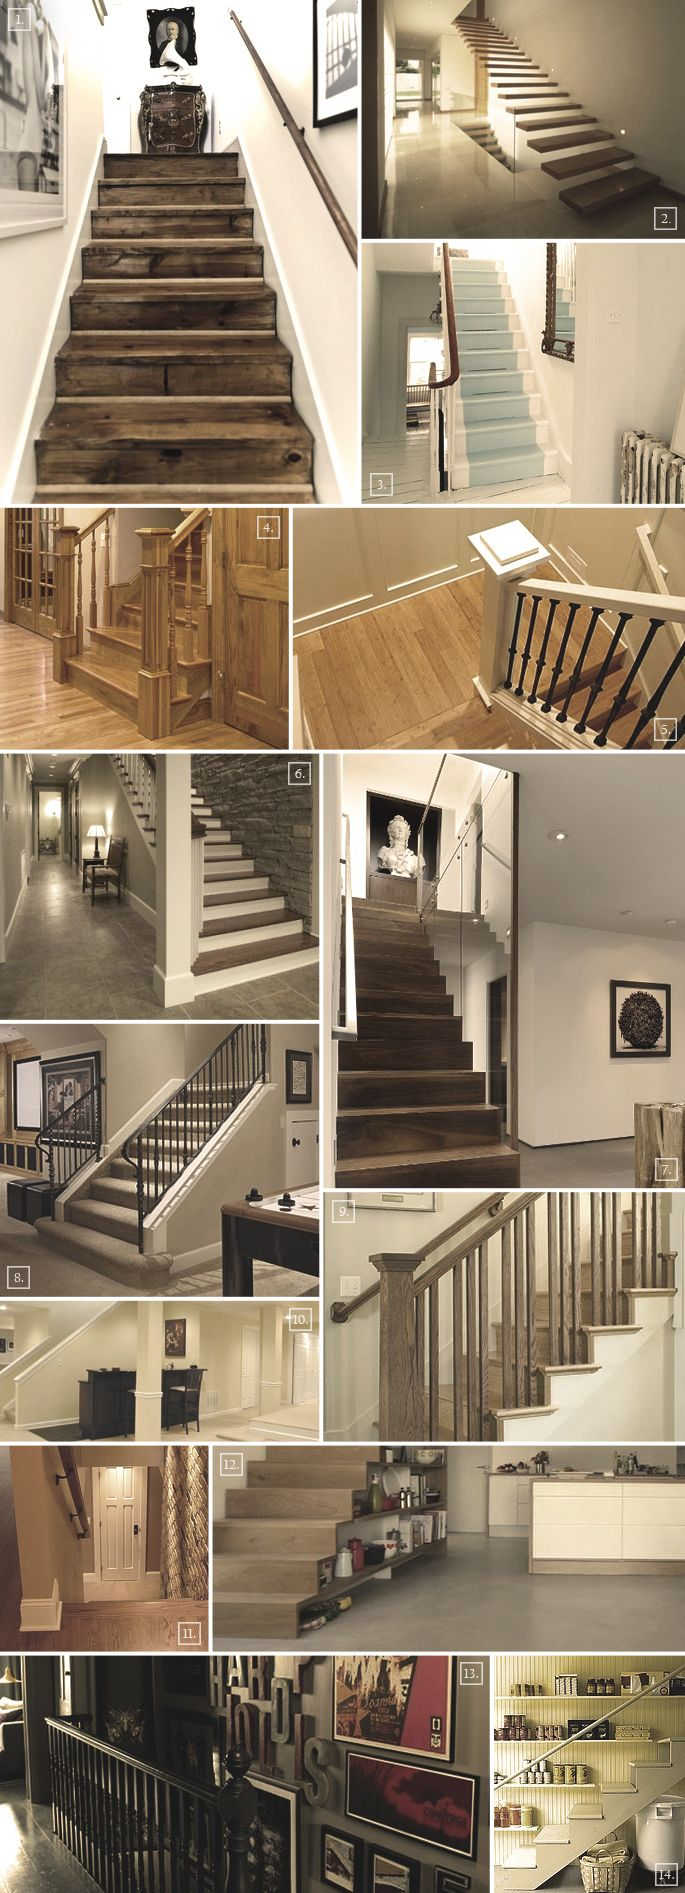 Basement Stairs Ideas: Ideas For A Basement Staircase: Designs, Railings, Storage